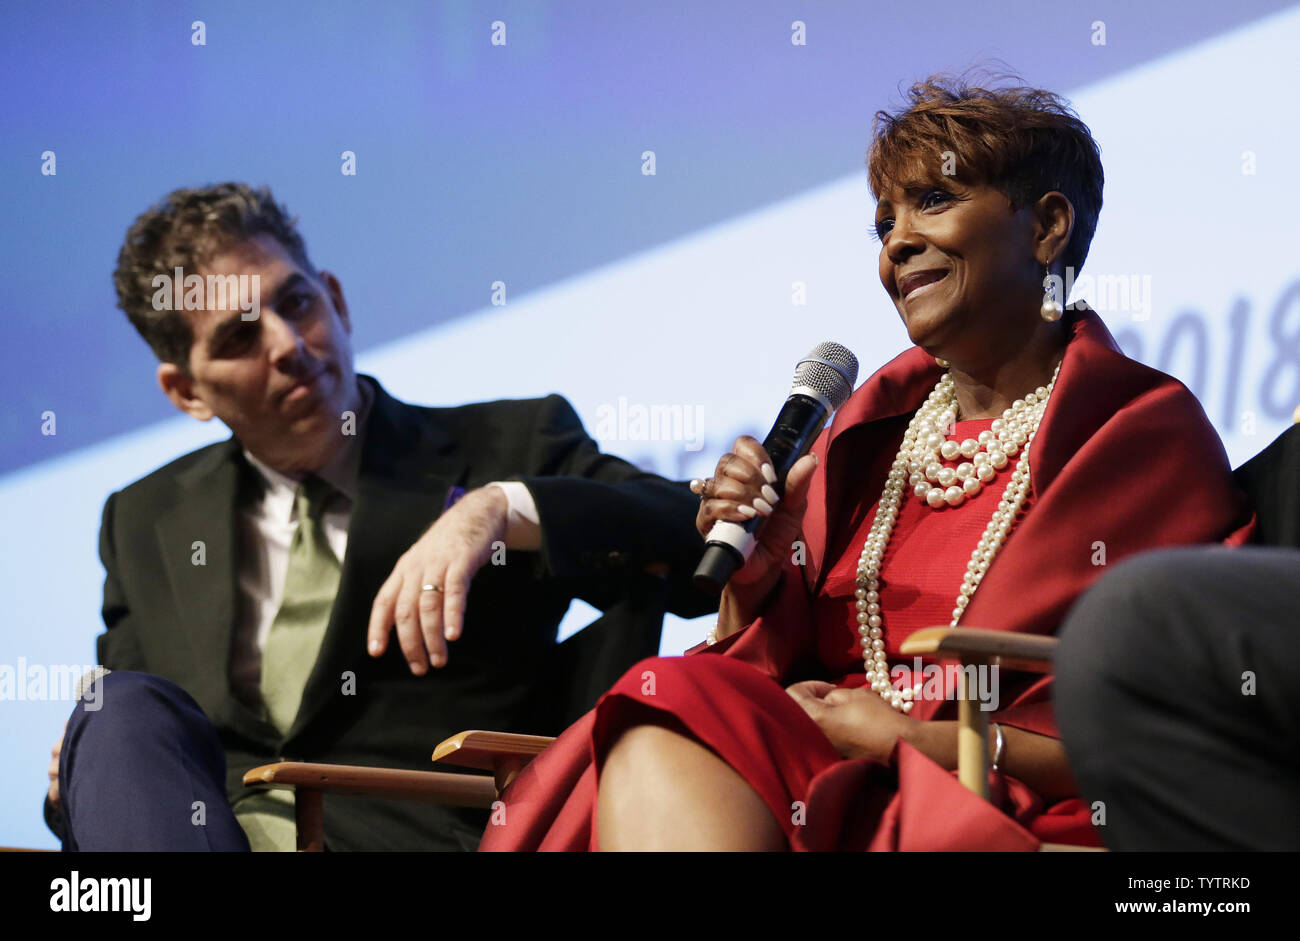 Lead Producer Alan Elliott and Aretha Franklin's niece & executive producer Sabrina Owens speak at a Q&A session at the World Premiere of Aretha Franklin documentary AMAZING GRACE at DOC NYC at SVA Theatre on November 12, 2018 in New York City.       Photo by John Angelillo/UPI - Stock Image